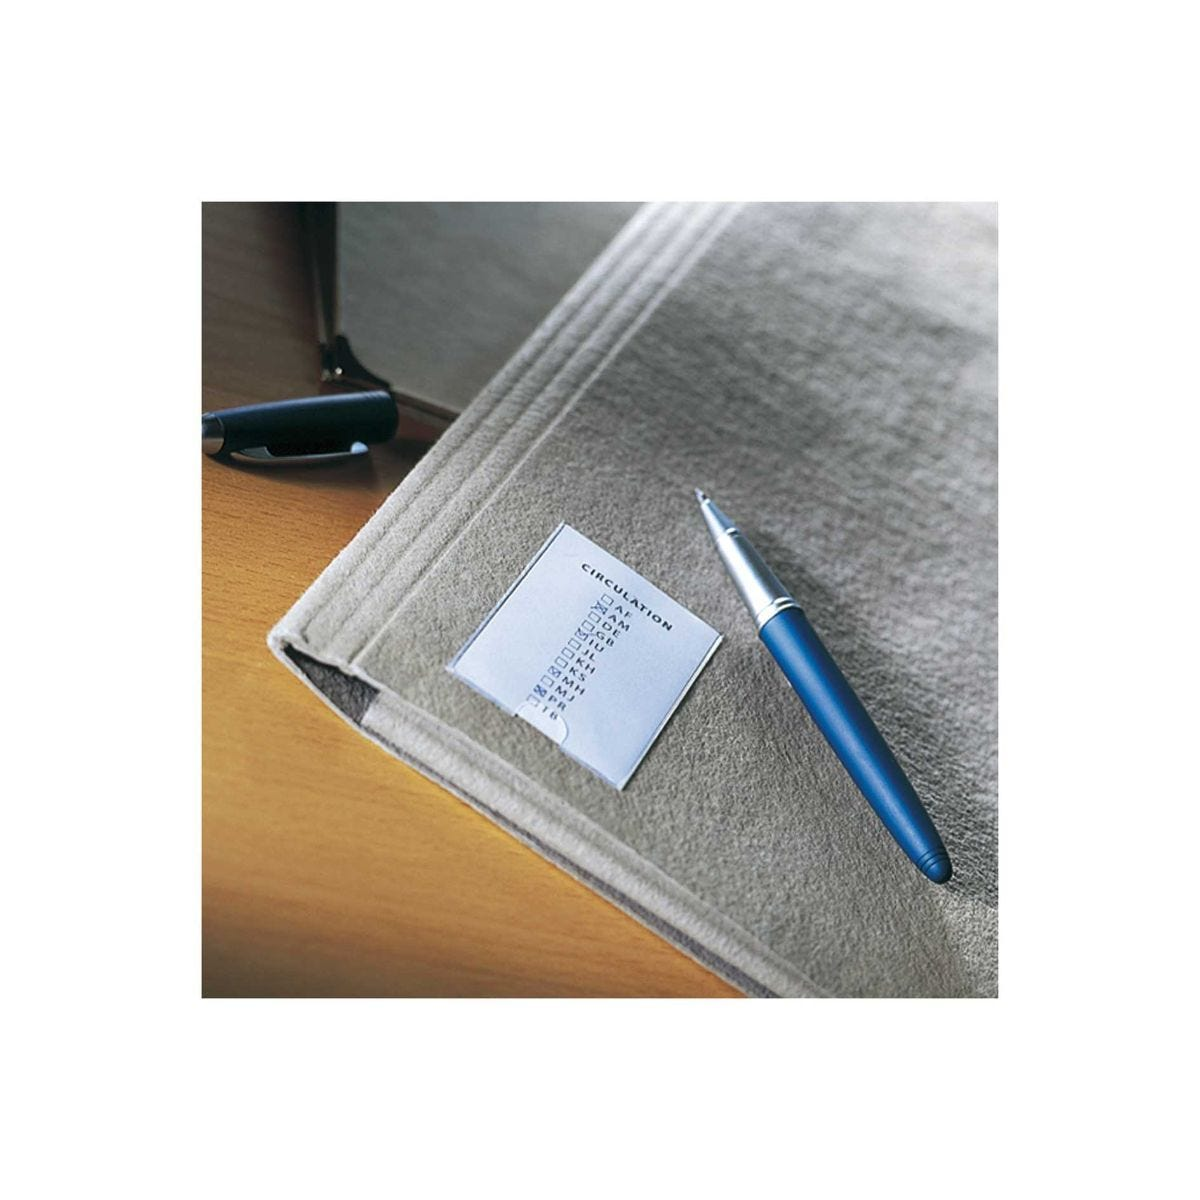 Image of 3L Self Adhesive Label Holders 55 x 102 Pack of 6